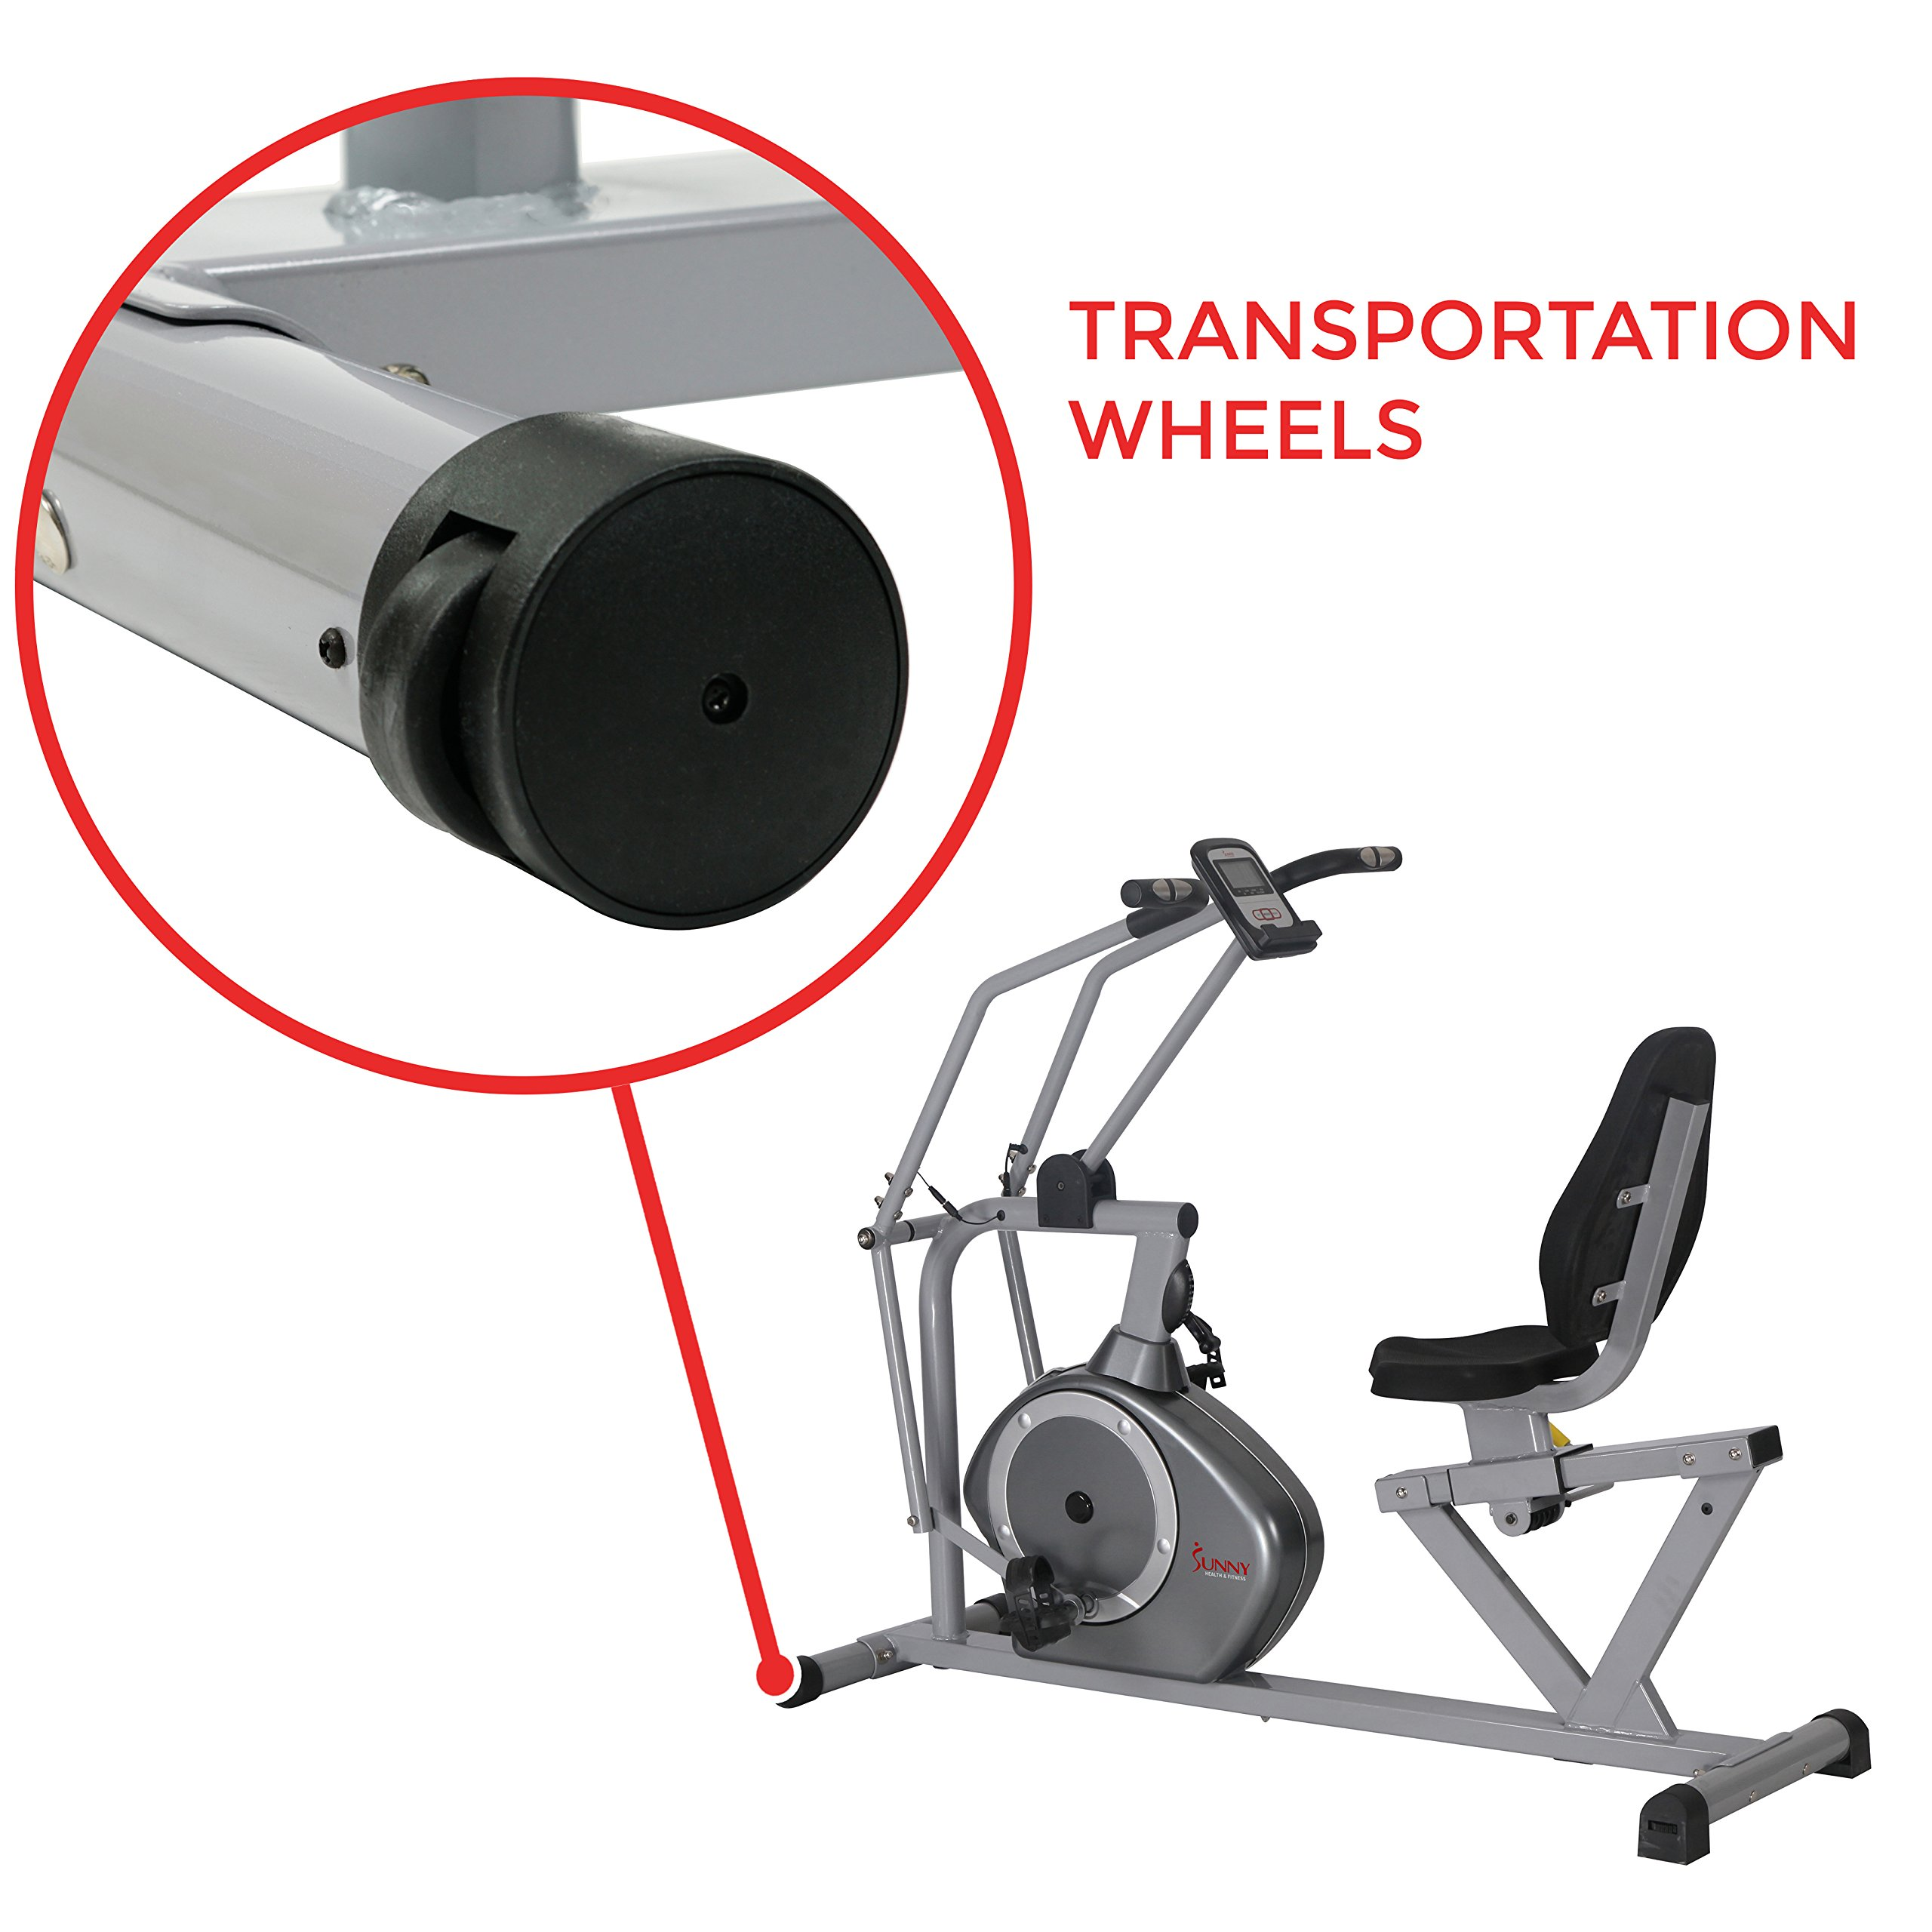 Sunny Health & Fitness Magnetic Recumbent Bike Exercise Bike, 350lb High Weight Capacity, Cross Training, Arm Exercisers, Monitor, Pulse Rate Monitoring - SF-RB4708 by Sunny Health & Fitness (Image #9)